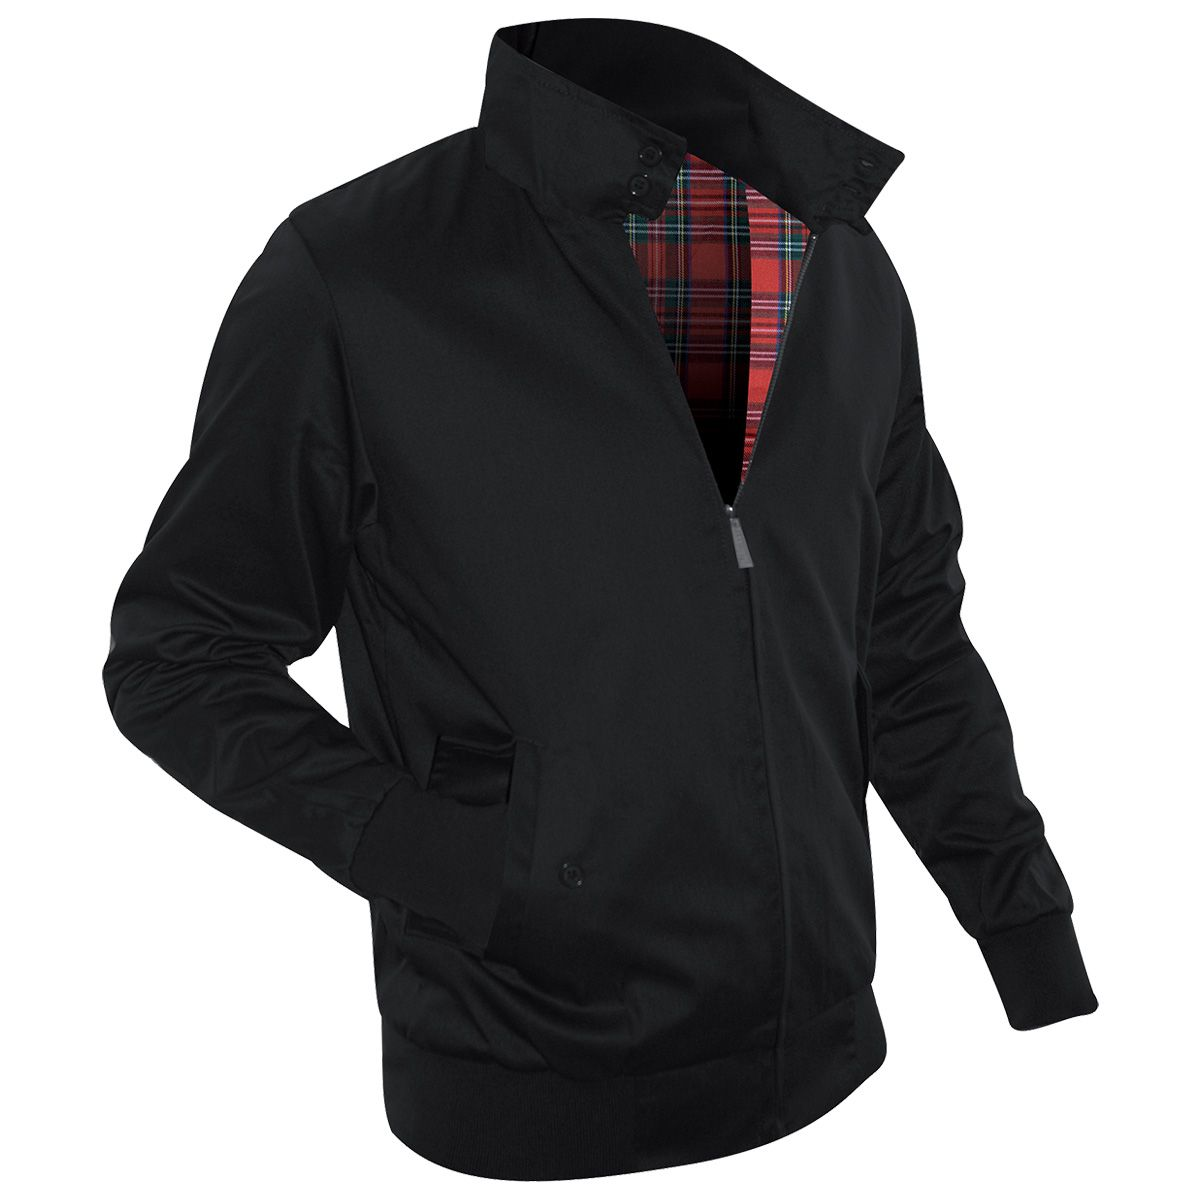 Veste harrington noire vestes blousons rock a gogo for Veste interieur ecossais